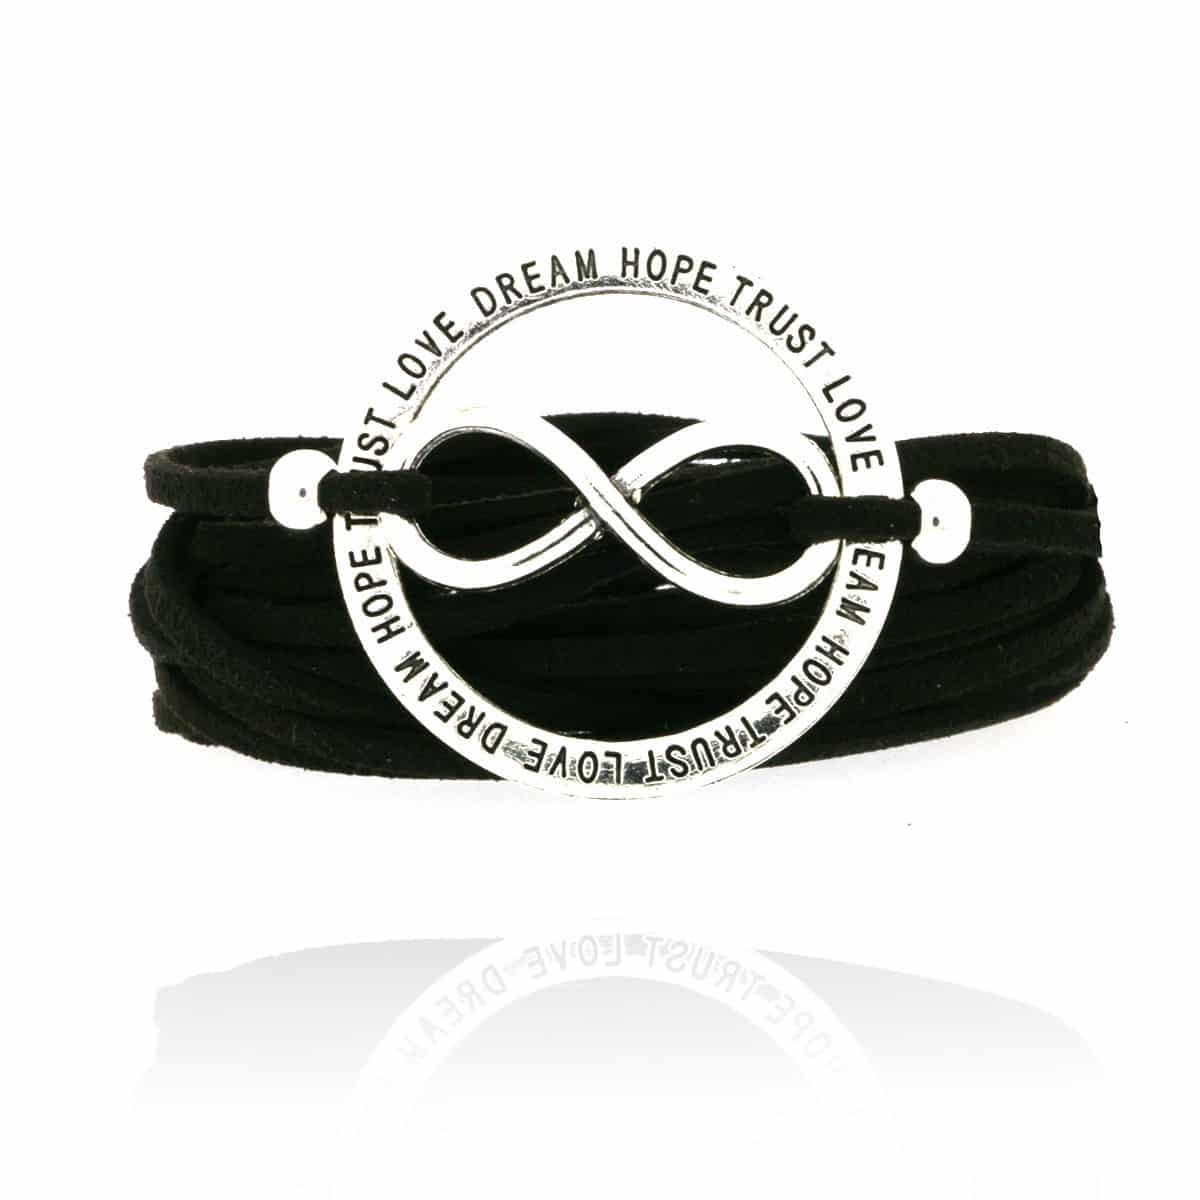 Always Dream Hope Love armband